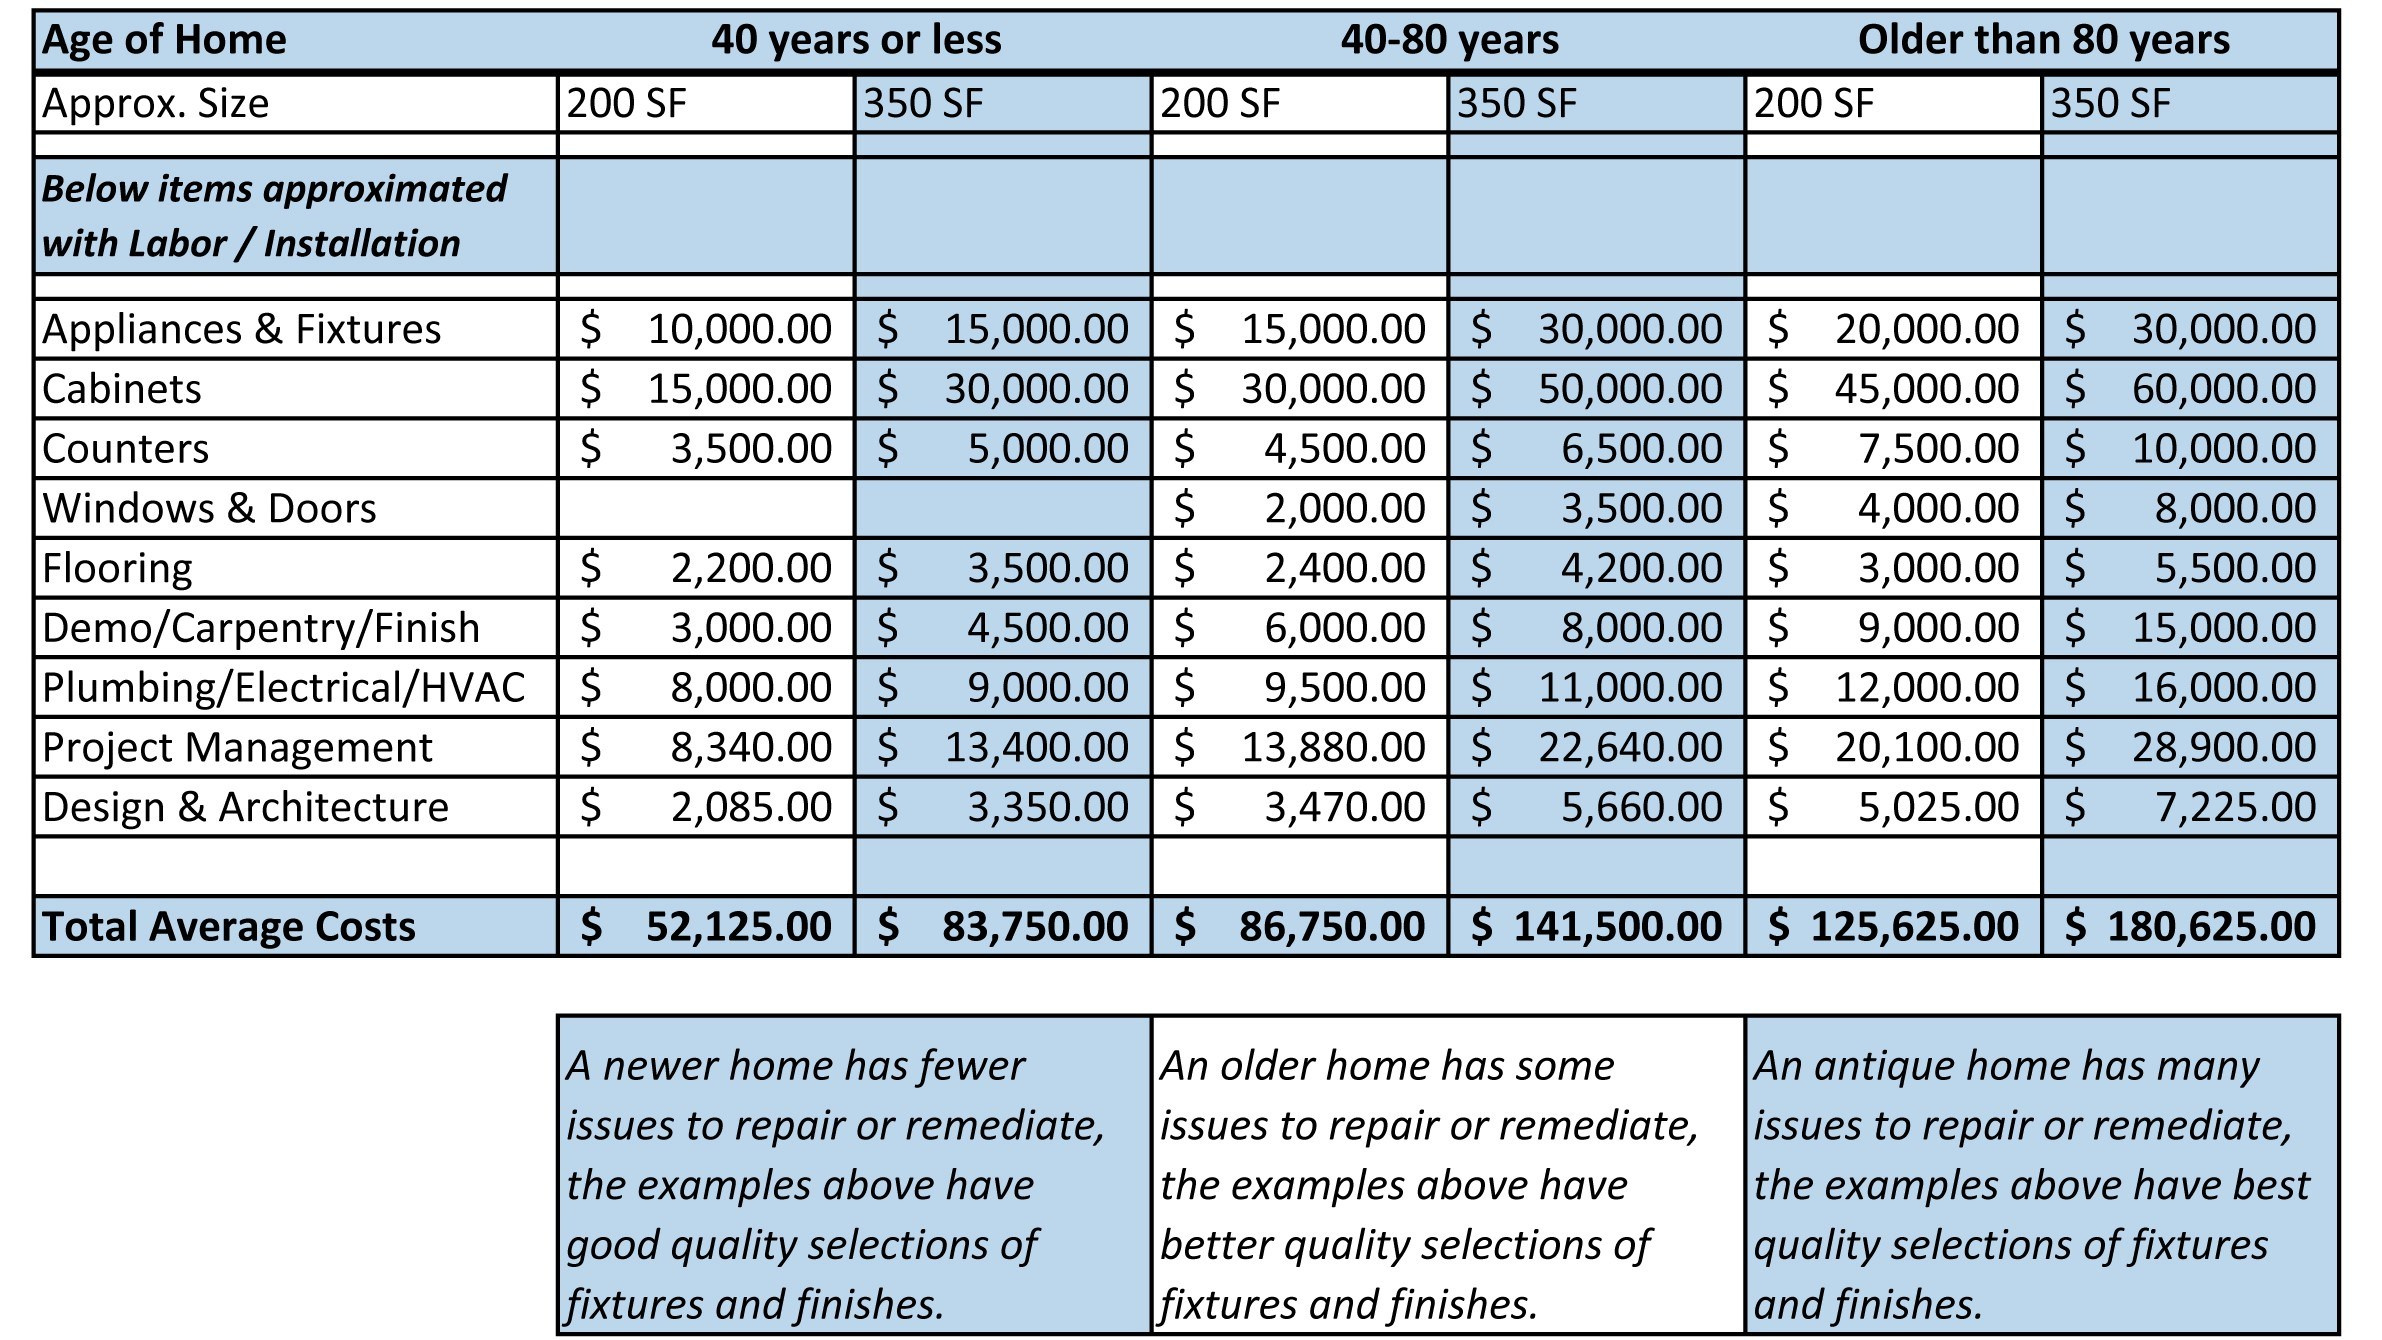 Home Renovation Cost Estimator Spreadsheet Pertaining To Home Renovation Cost Estimator Spreadsheet – Spreadsheet Collections